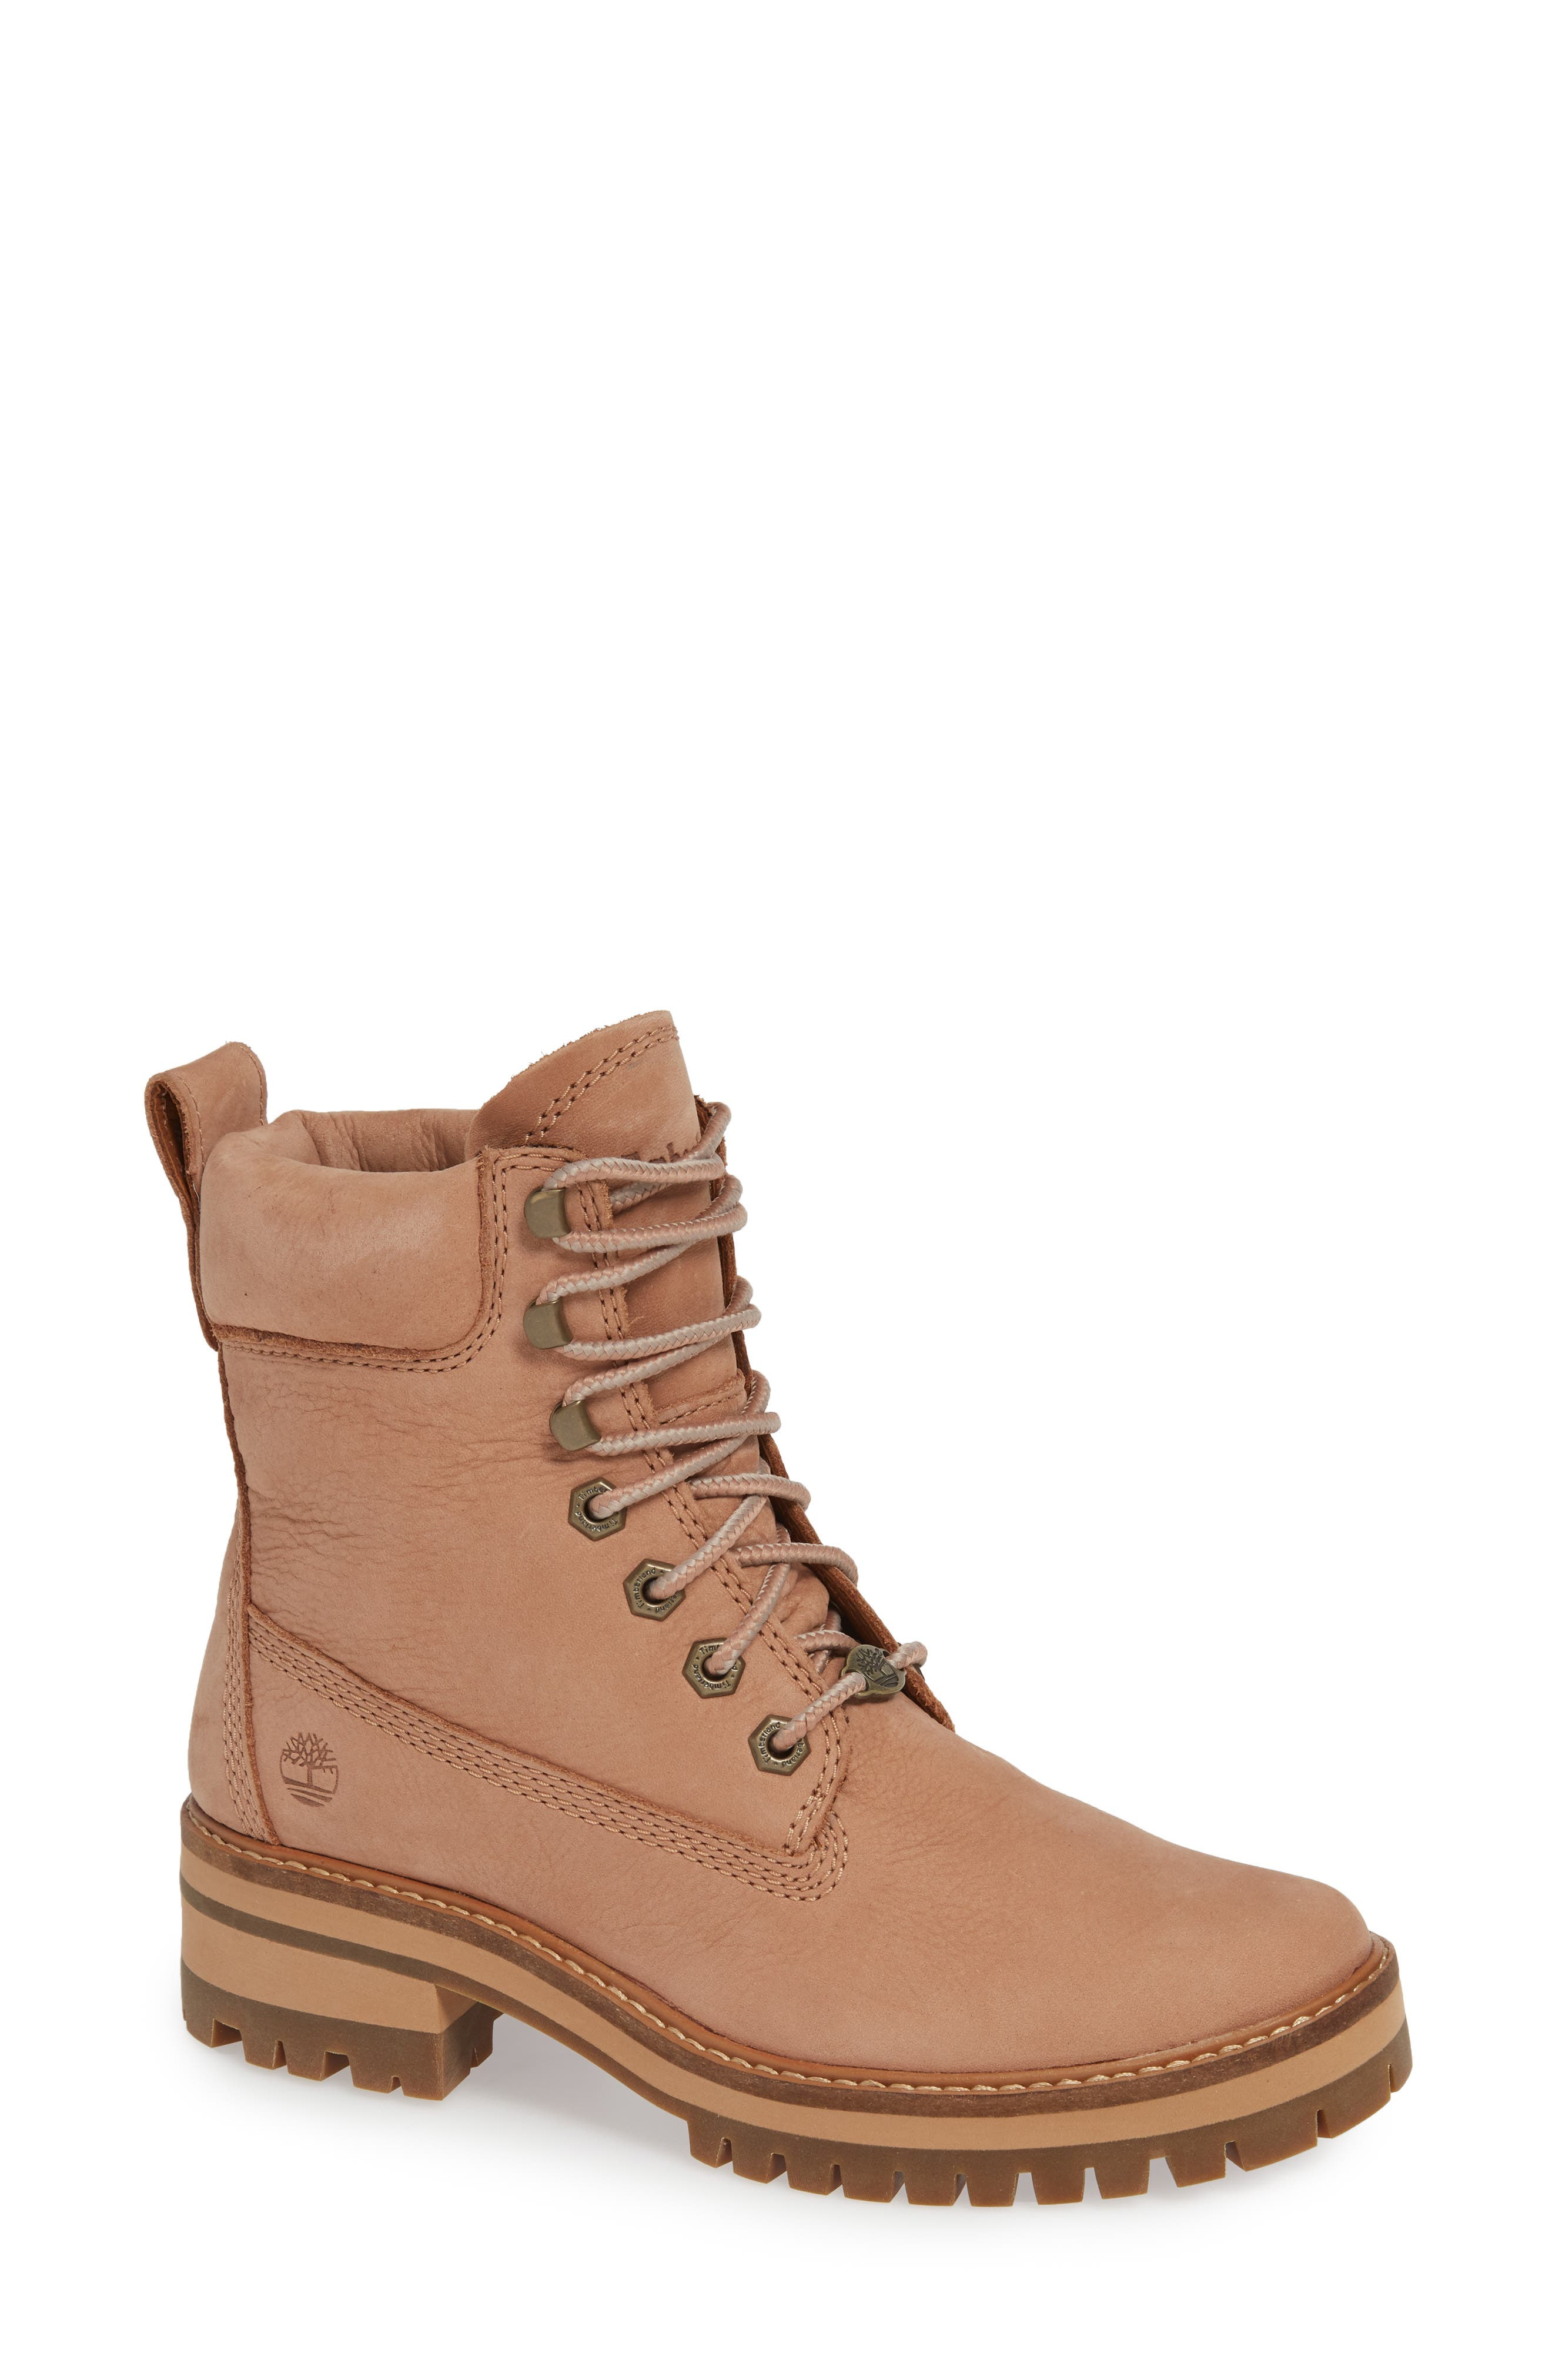 Courmayeur Valley Water Resistant Hiking Boot,                             Main thumbnail 1, color,                             TAWNY BROWN NUBUCK